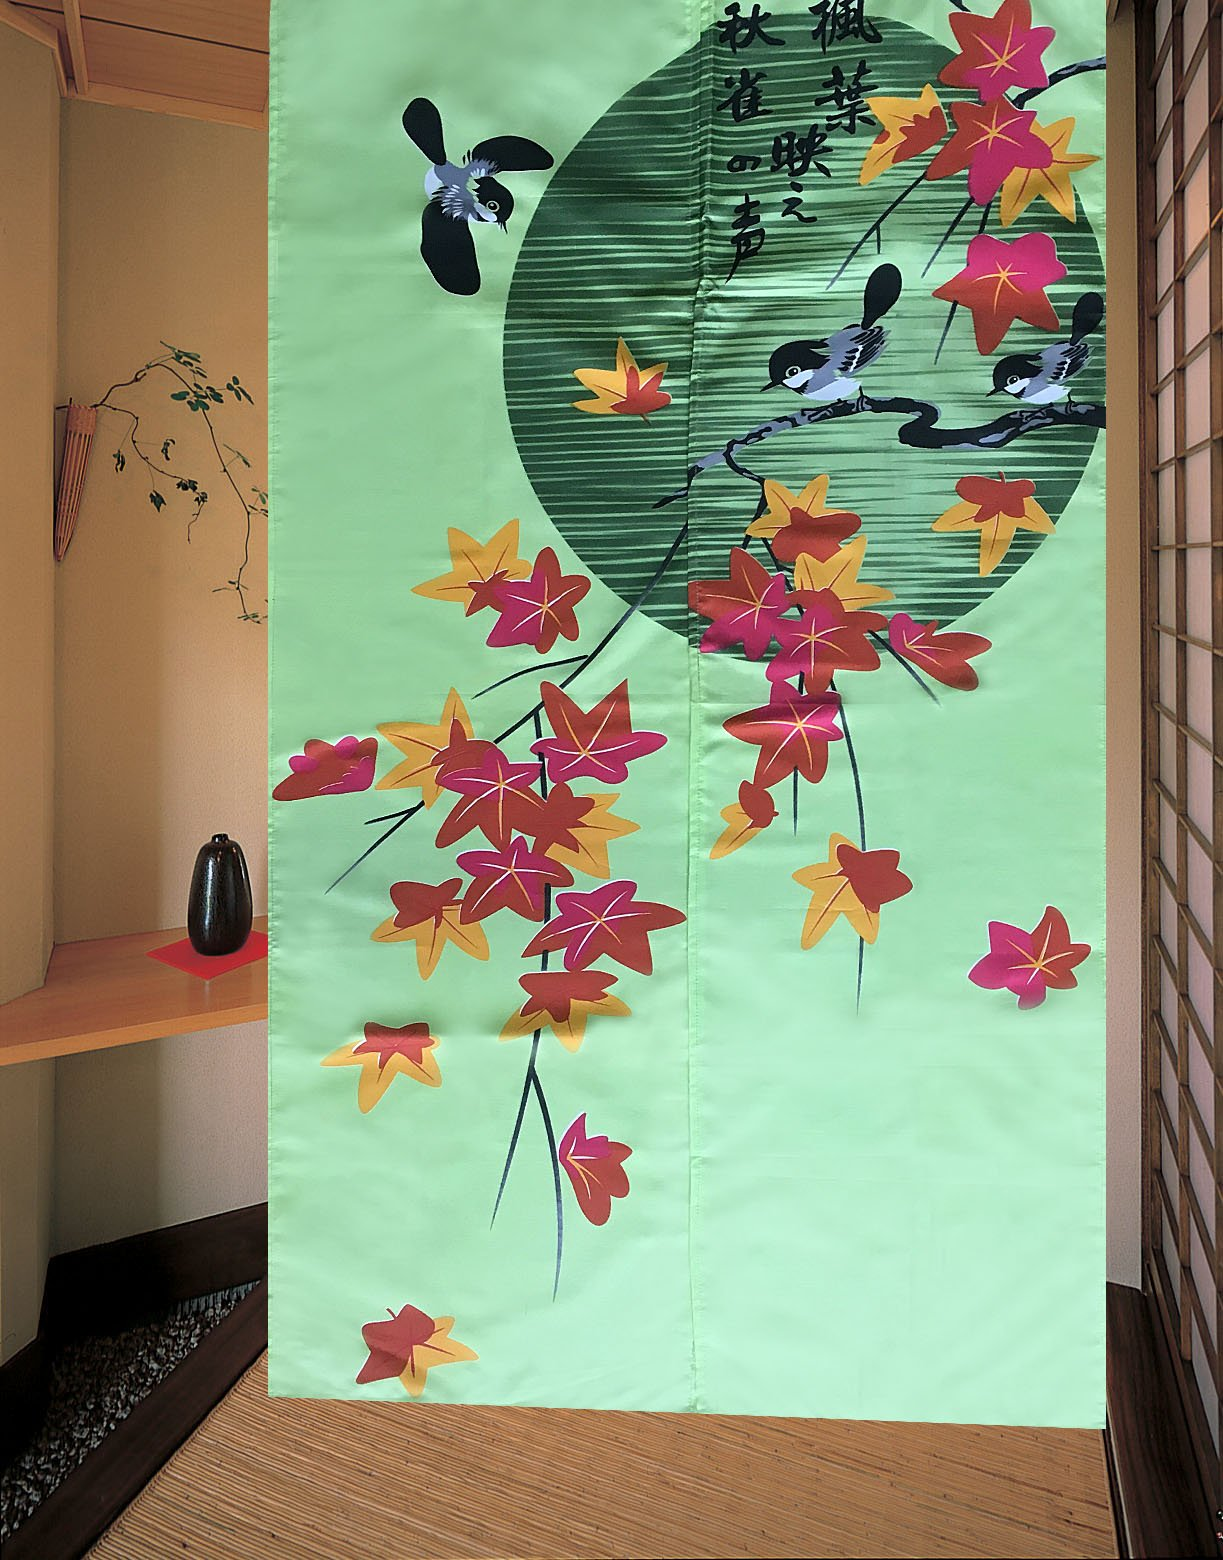 LifEast Japanese Tapestry Door Curtain Red Maple Top of Tree Autumn Style Noren Curtains Doorway Decor (E) by LifEast